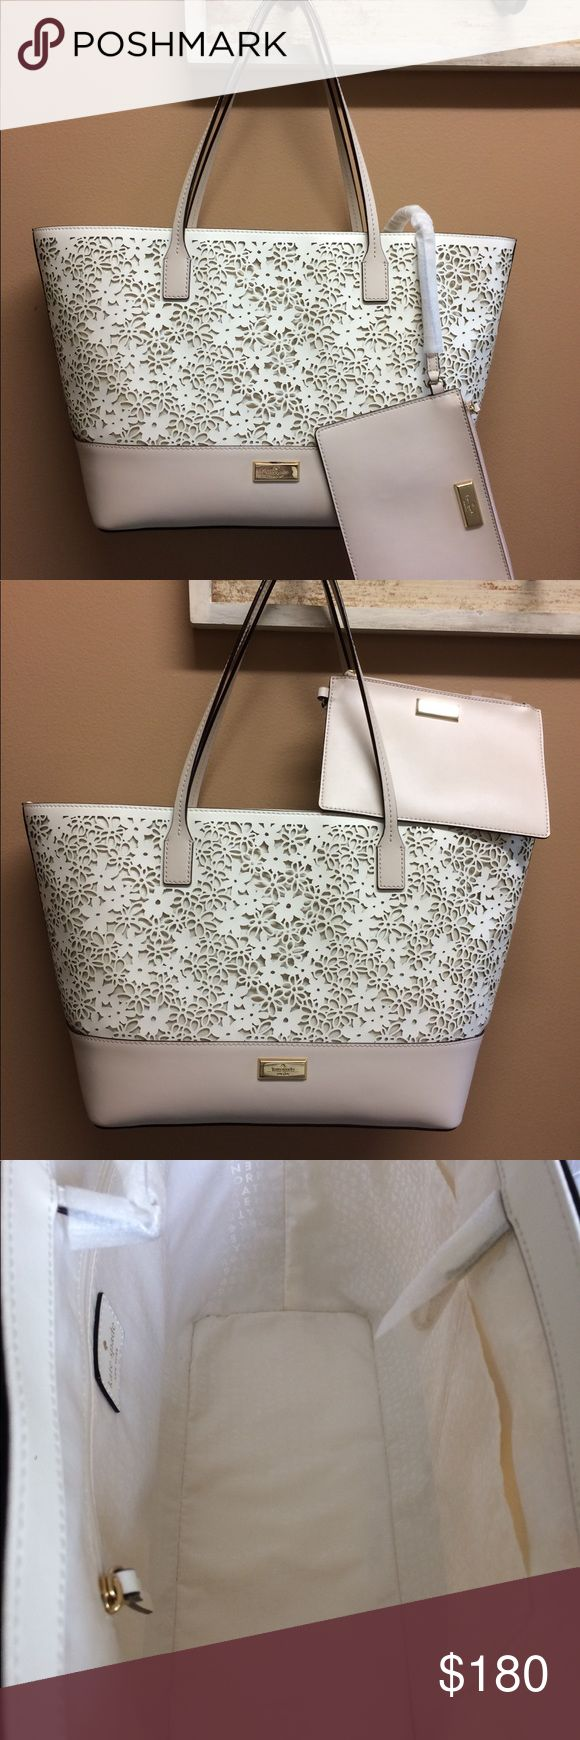 "NWT Kate Spade Shoulder bag NWT Kate Spade Shoulder bag. Cream cowhide leather with 14K gold plated hardware.  Includes 5"" x 7"" zip pouch. open top with dog leash closure. Approx. measurements 18"" h (with handles) x 17 x 6""D. 11 1/2"" bottom kate spade Bags Shoulder Bags"